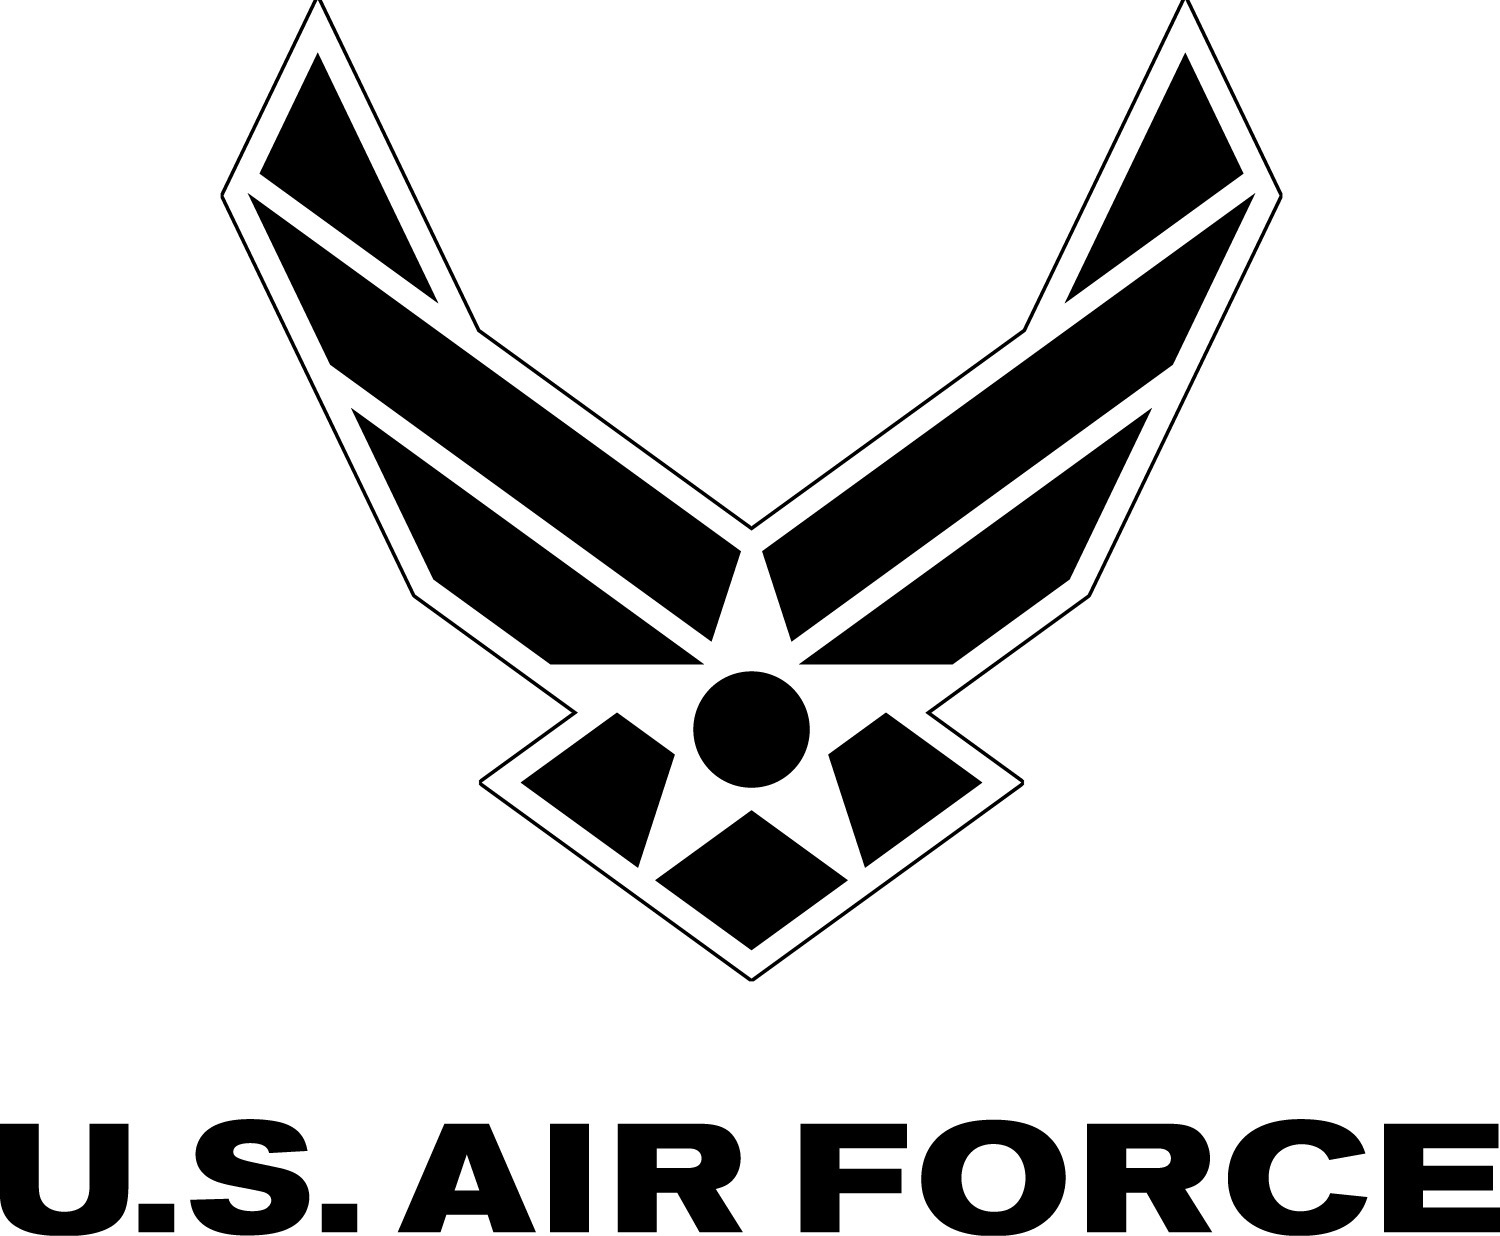 Air Force Symbol With Logotype Black With White Outline